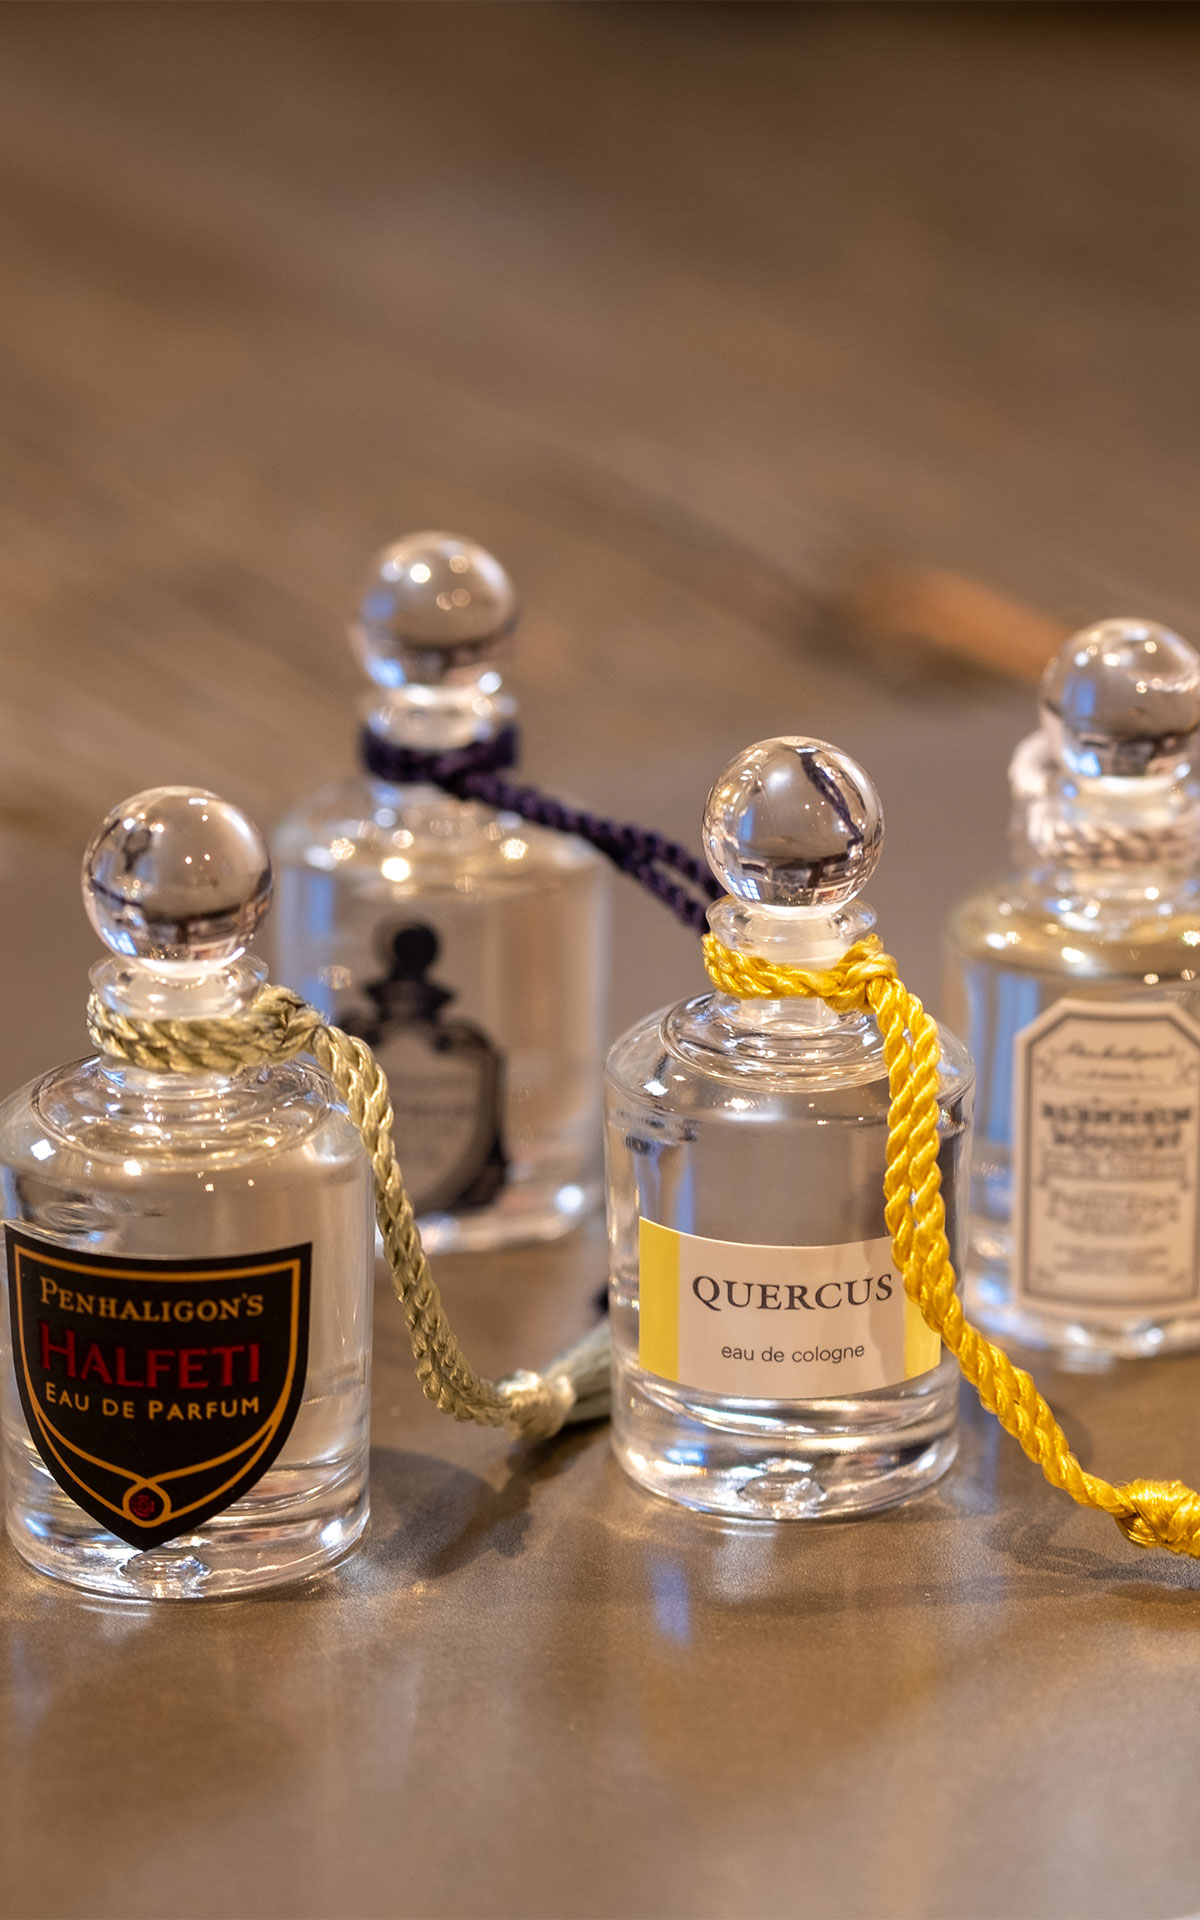 Penhaligon's Gent's fragrance collection from Bicester Village